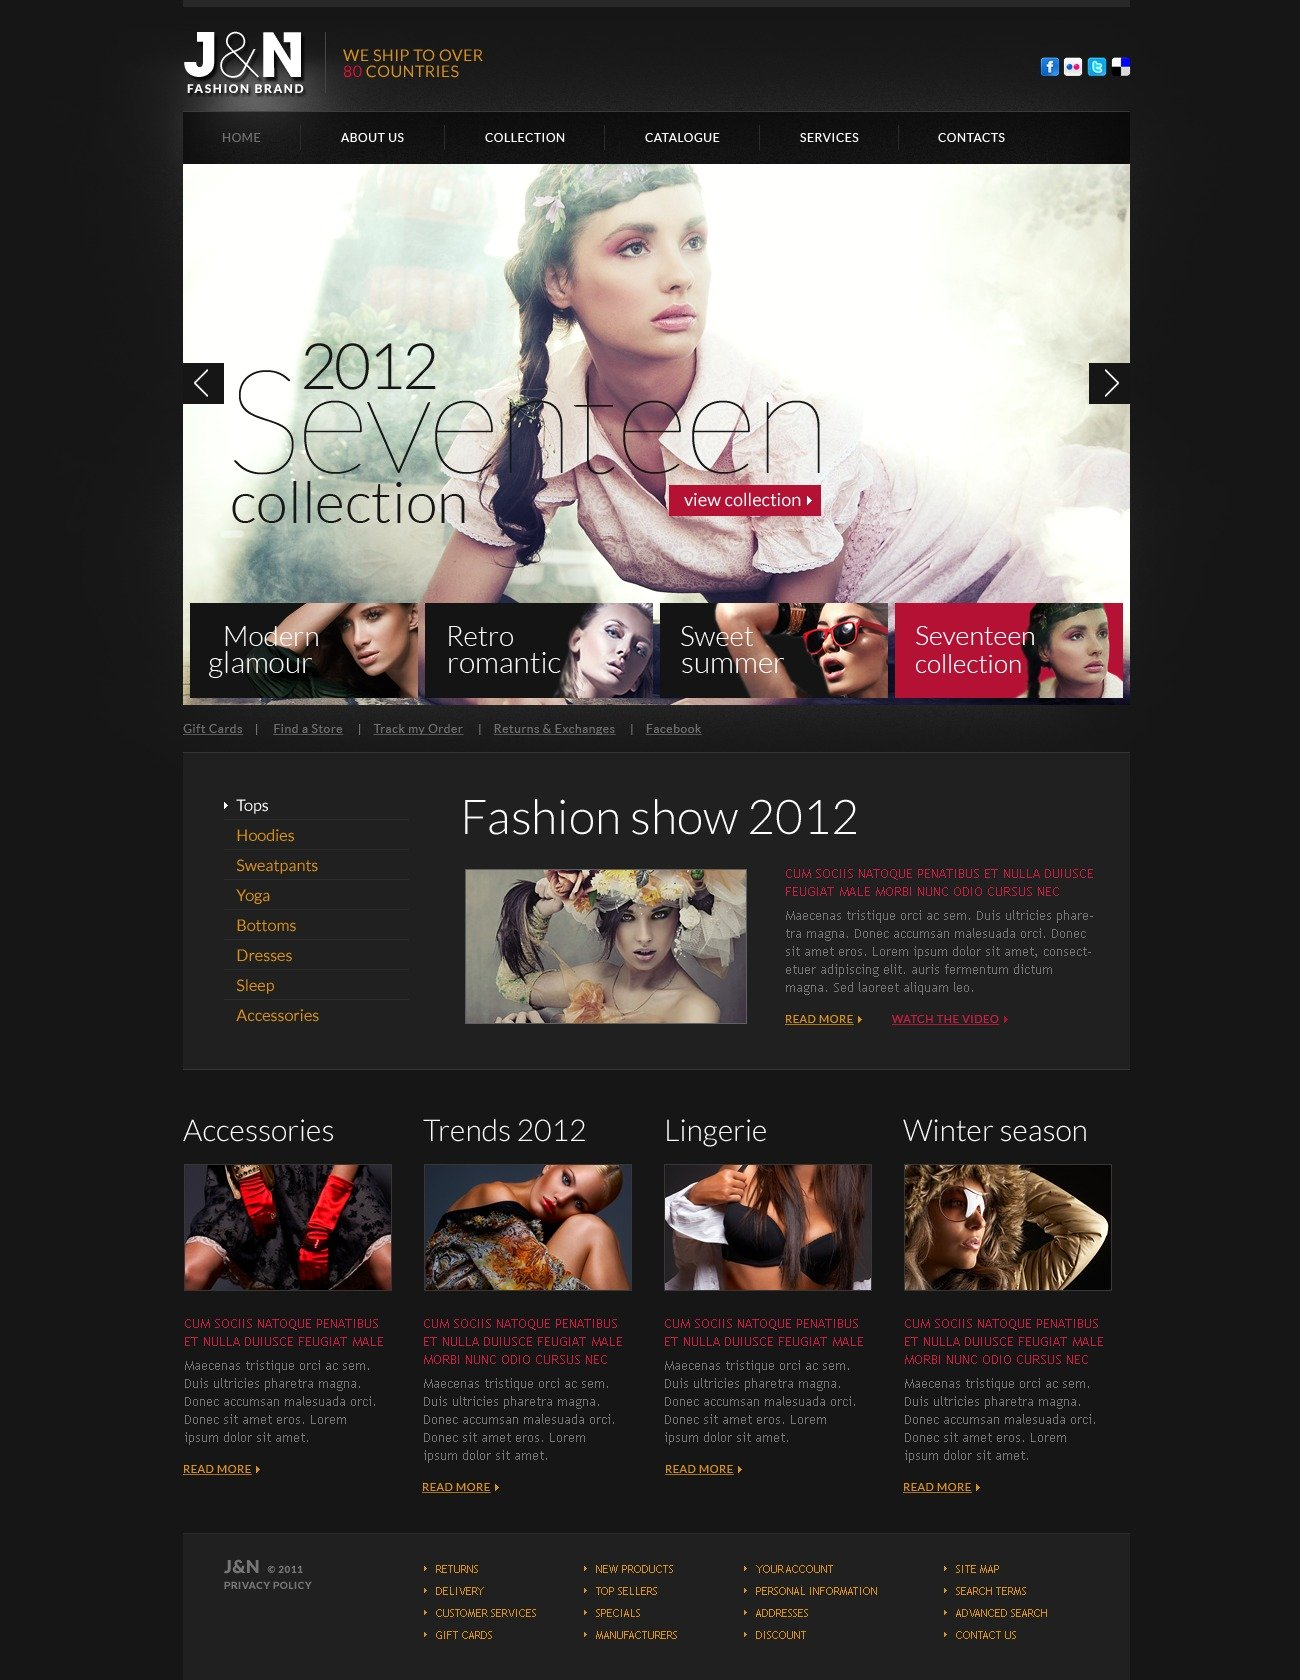 fashion products website template 37189 by wt website templates. Black Bedroom Furniture Sets. Home Design Ideas